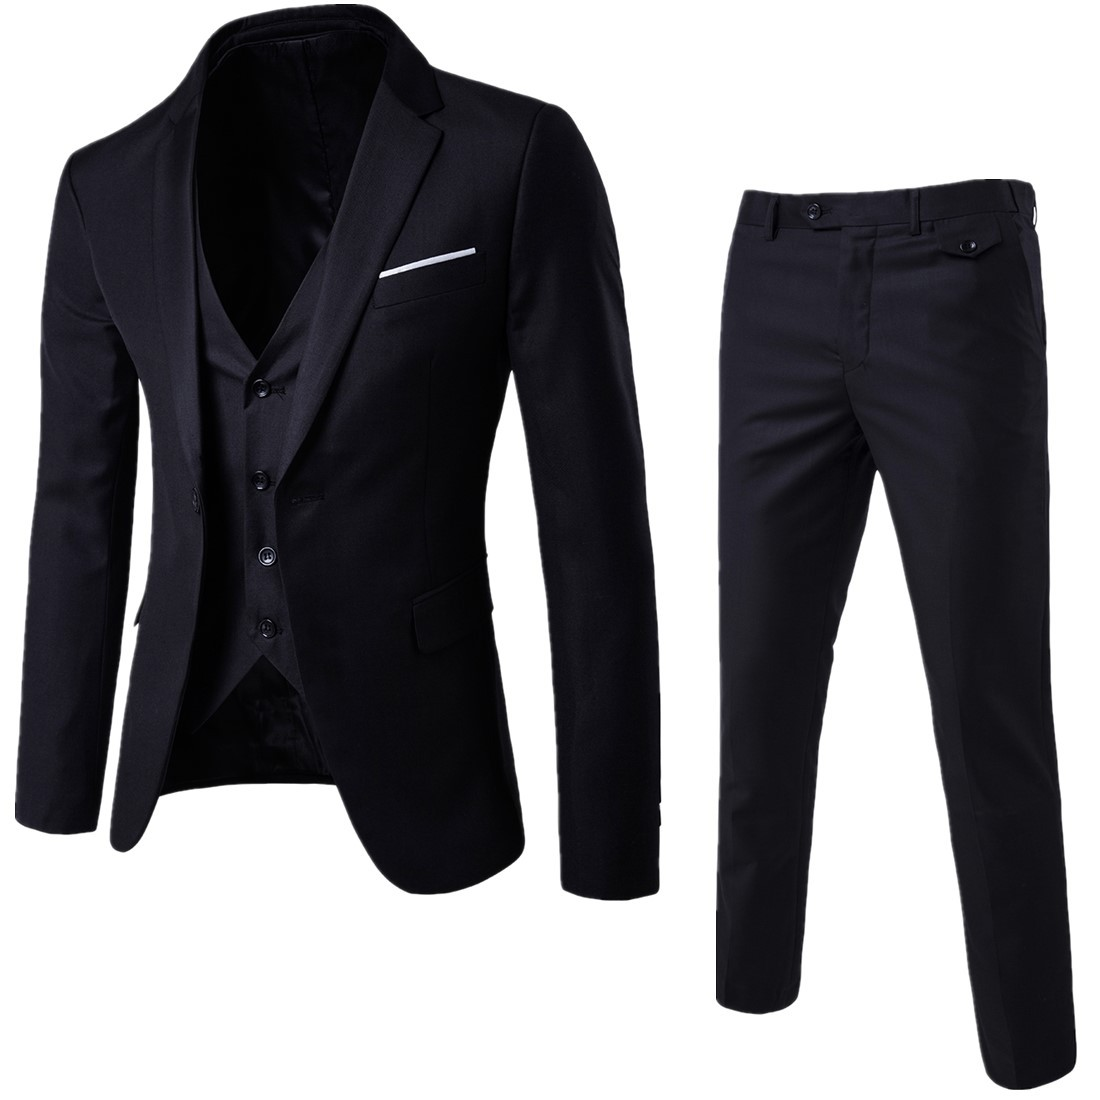 Suit Men Three-piece Set Slim Fit Summer Going To Work Formal Wear Business Suit College Student Best Man Groom Formal Dress